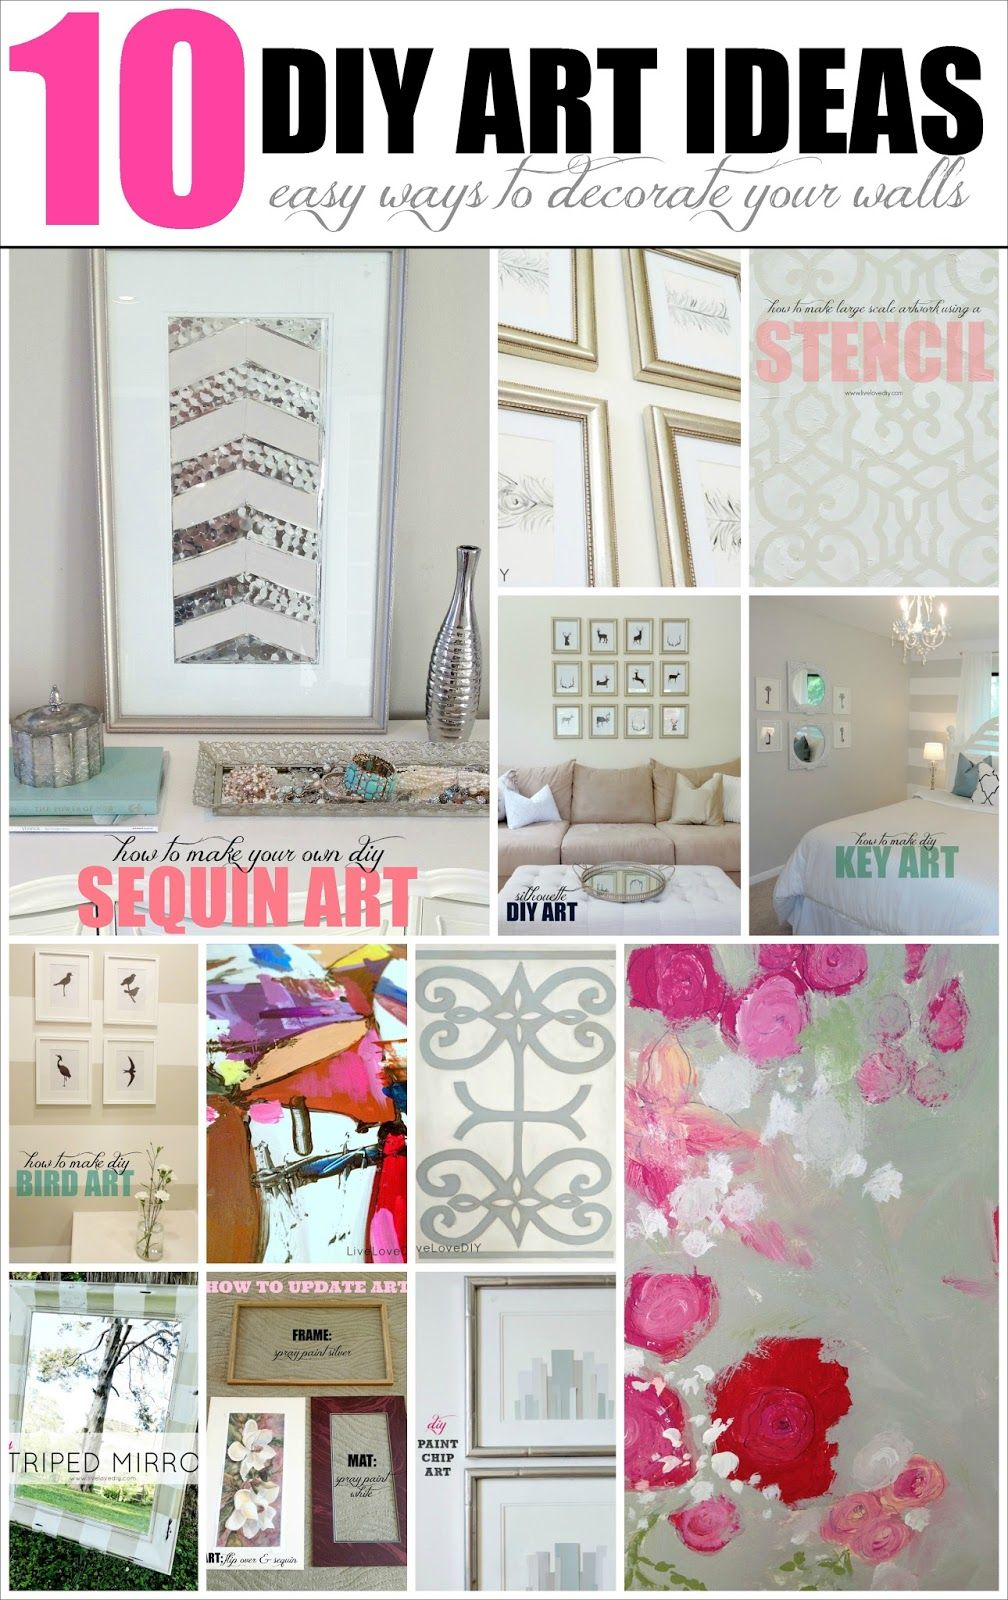 Diy organization and room decor google search diy organizasion